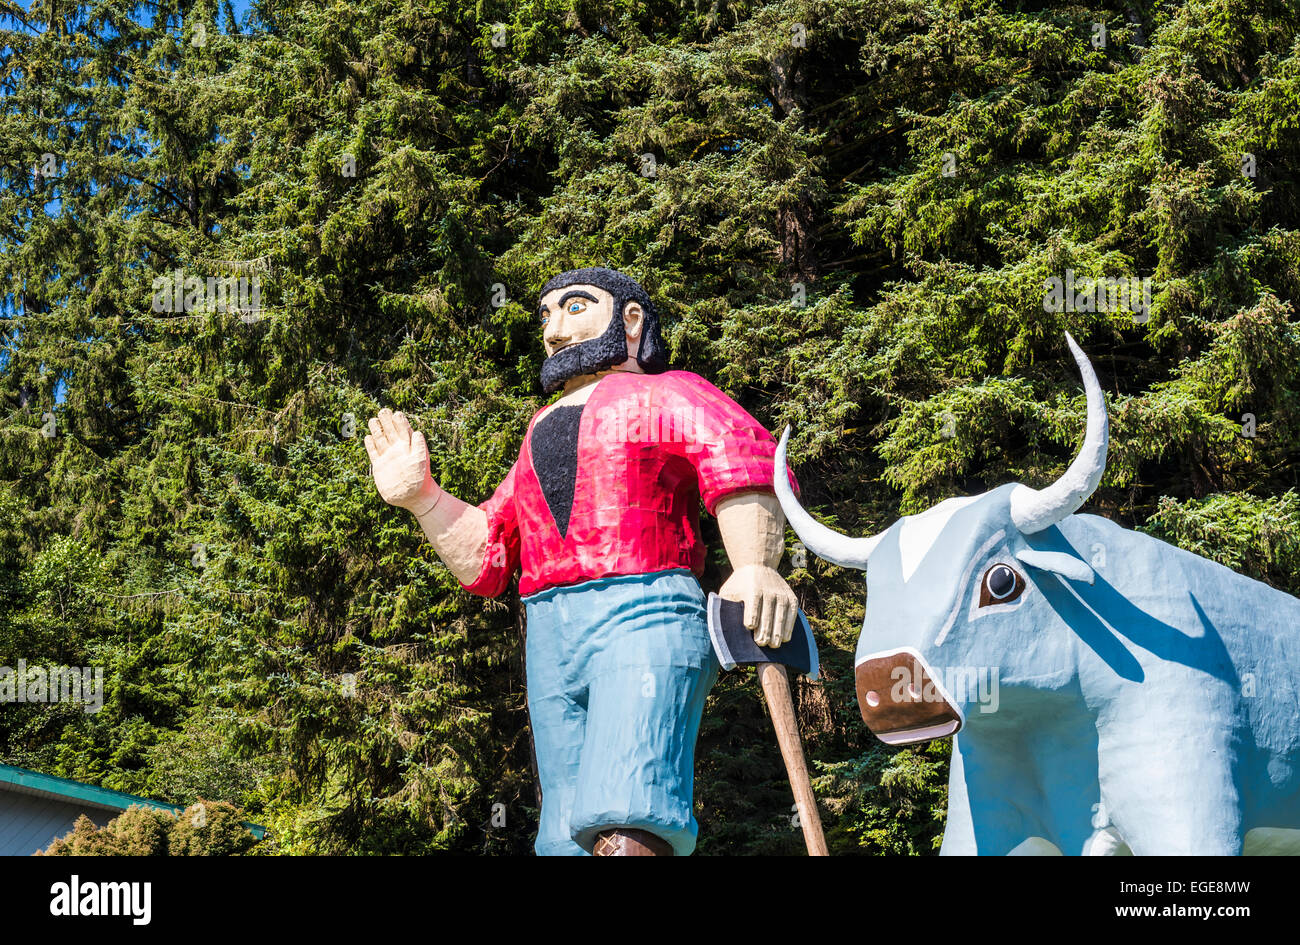 Paul Bunyan and Babe the Blue Ox statues. Trees of Mystery, Klamath, California, United States. - Stock Image